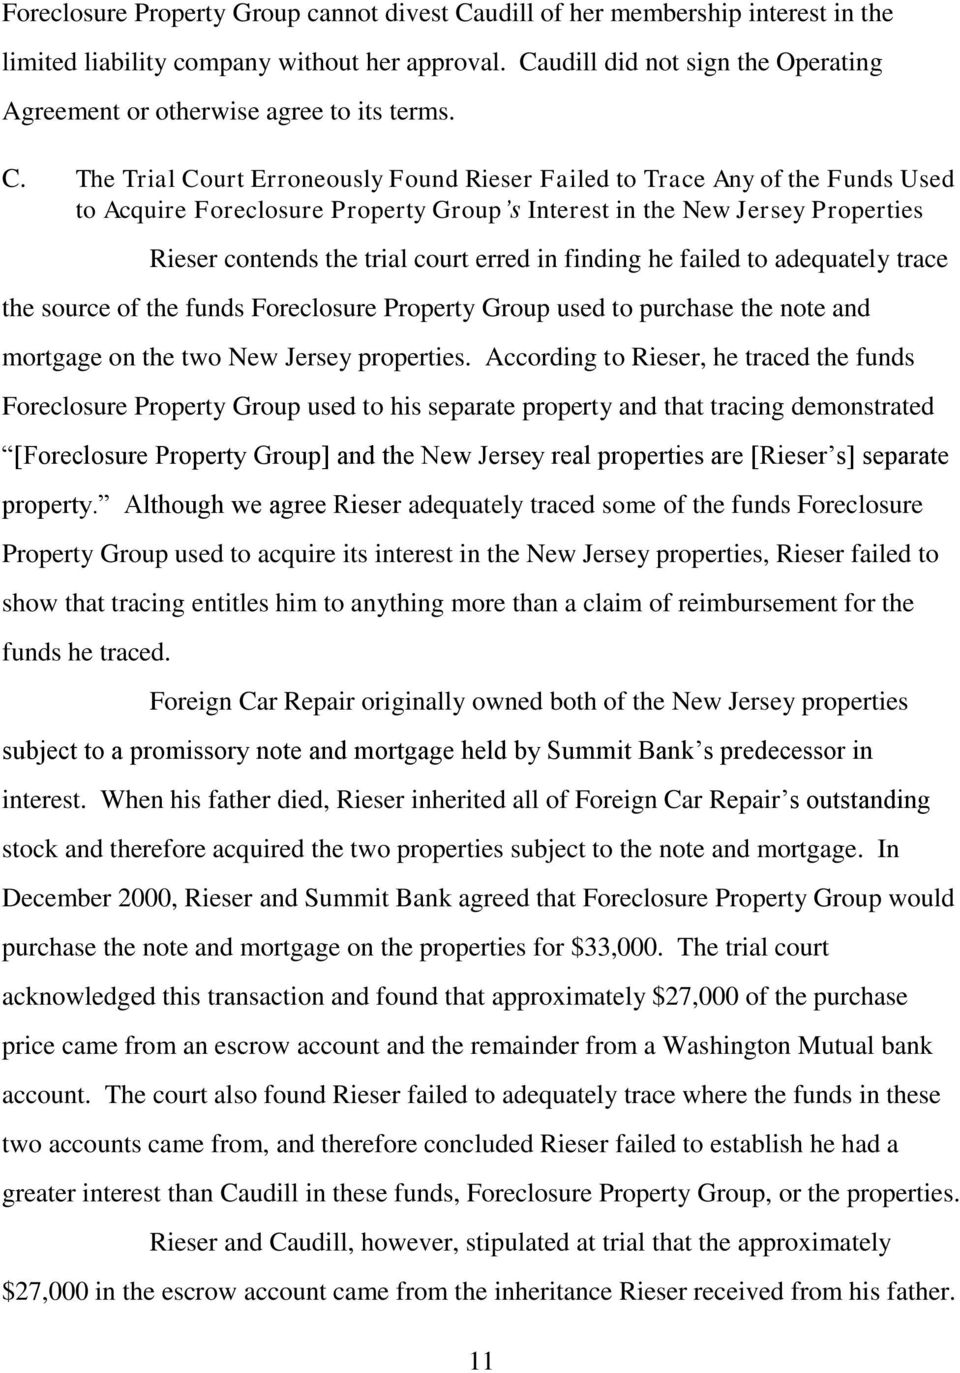 The Trial Court Erroneously Found Rieser Failed to Trace Any of the Funds Used to Acquire Foreclosure Property Group s Interest in the New Jersey Properties Rieser contends the trial court erred in